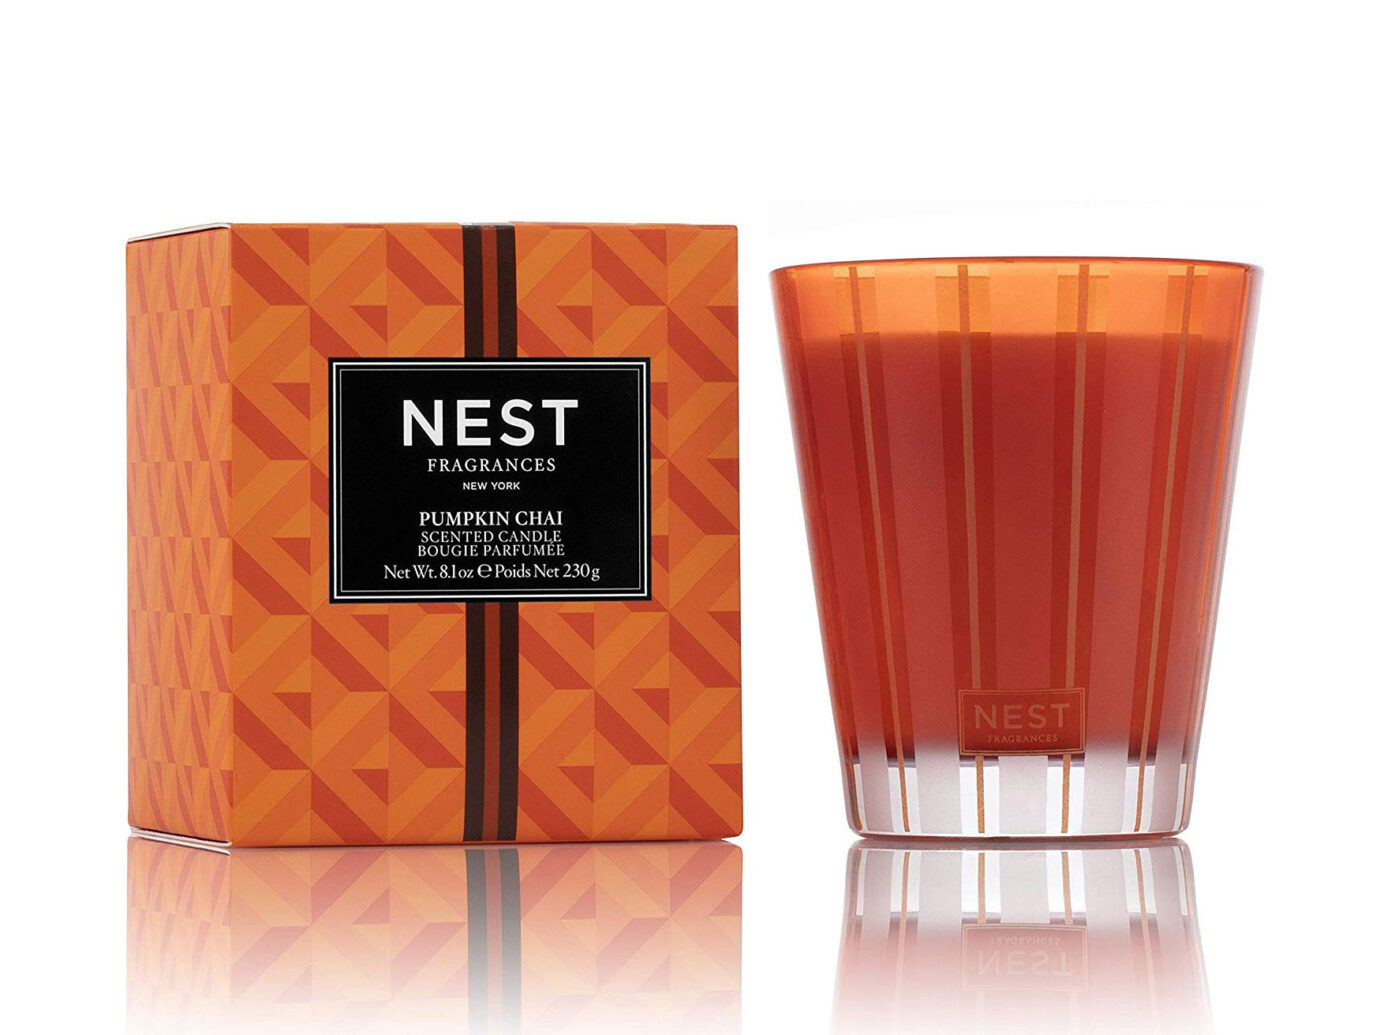 NEST Fragrances Classic Candle in Pumpkin Chai